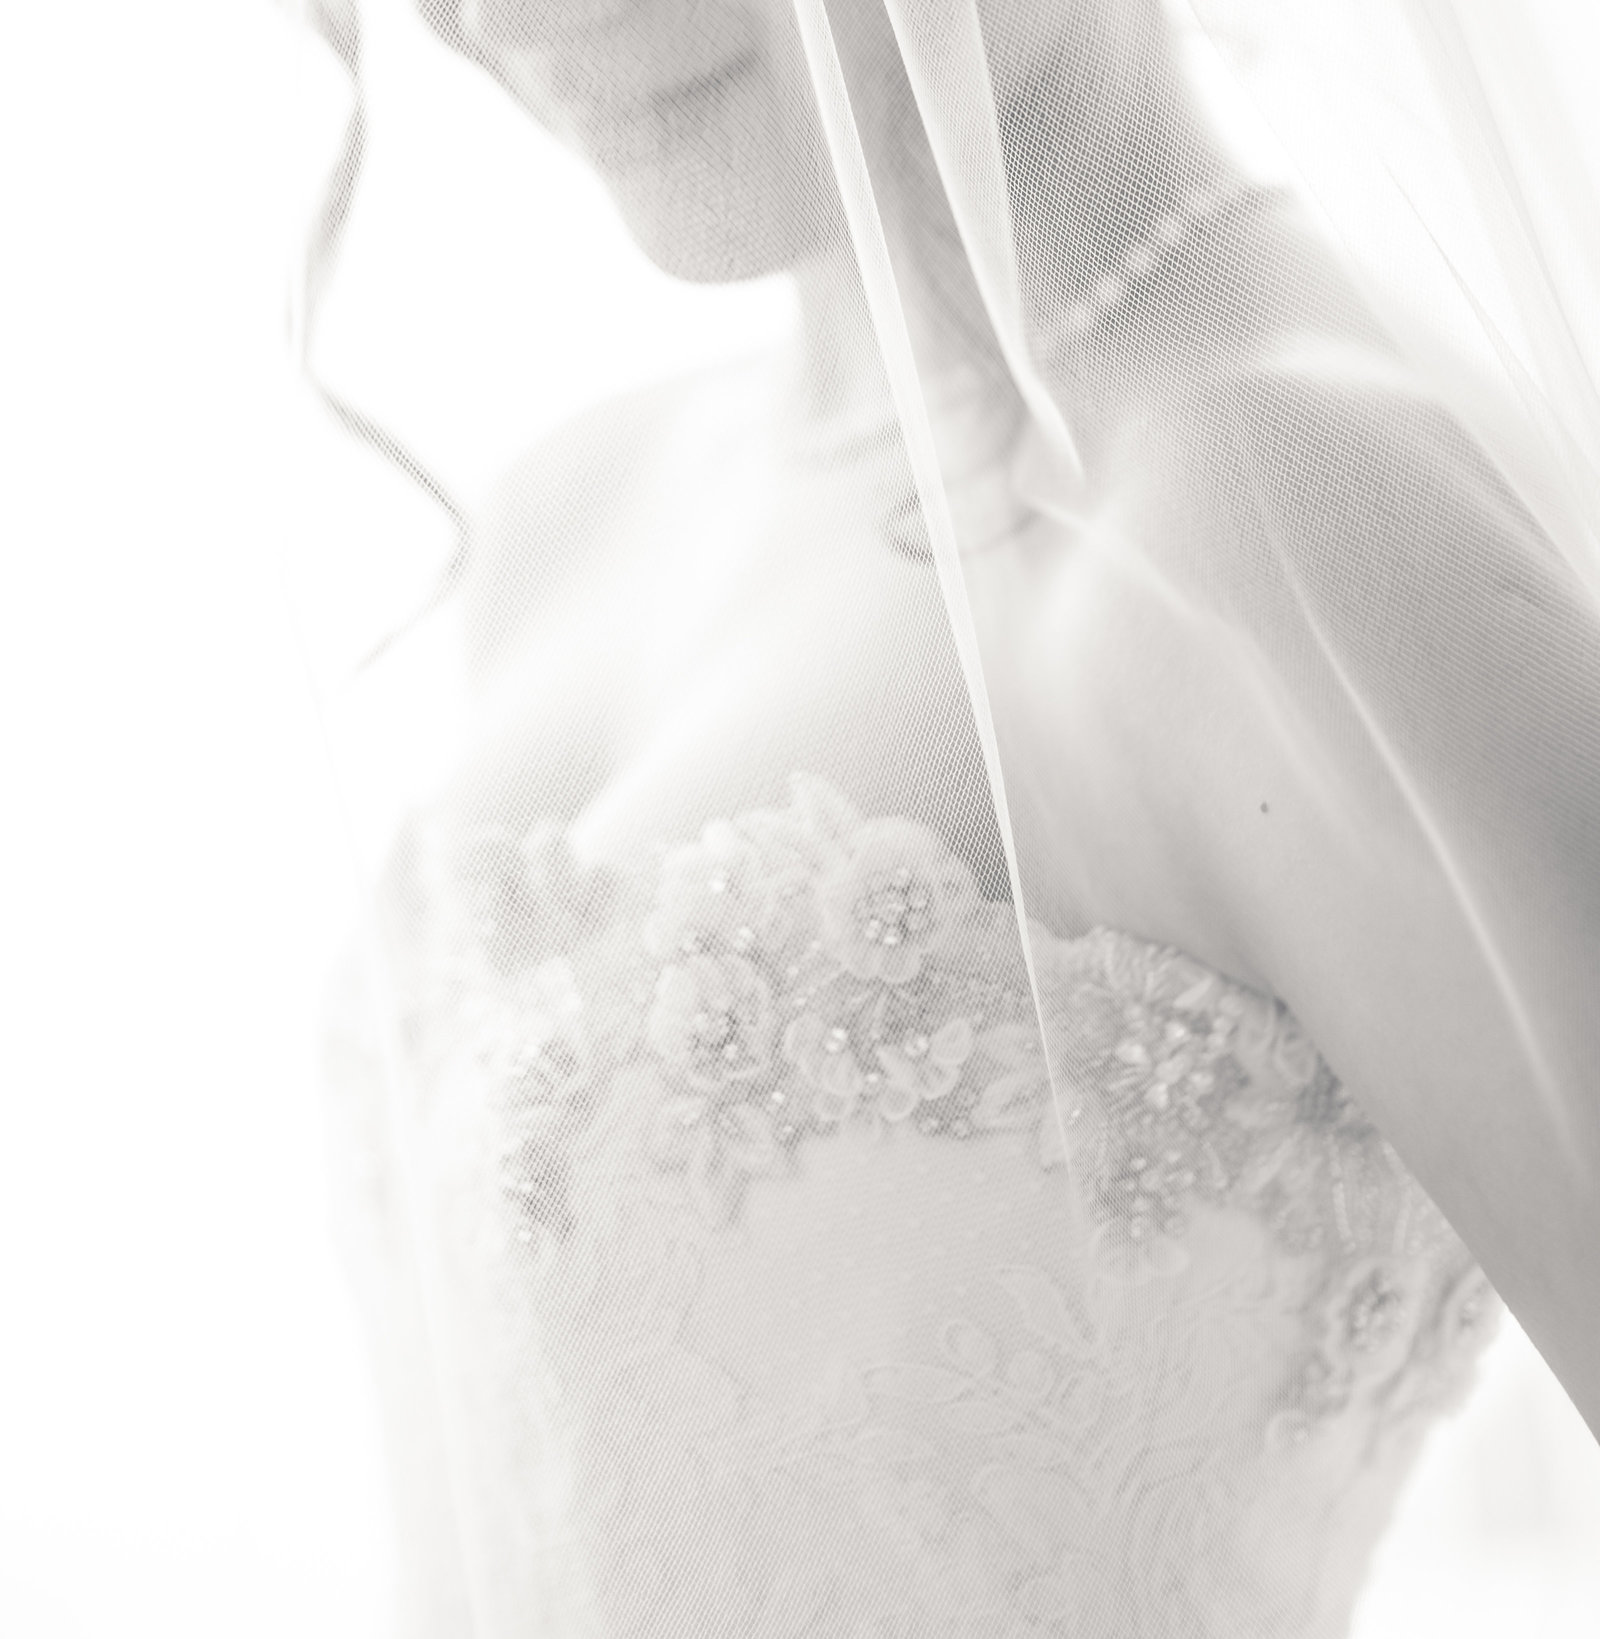 Fine Art Weddings by Animus-Art Photography (17)